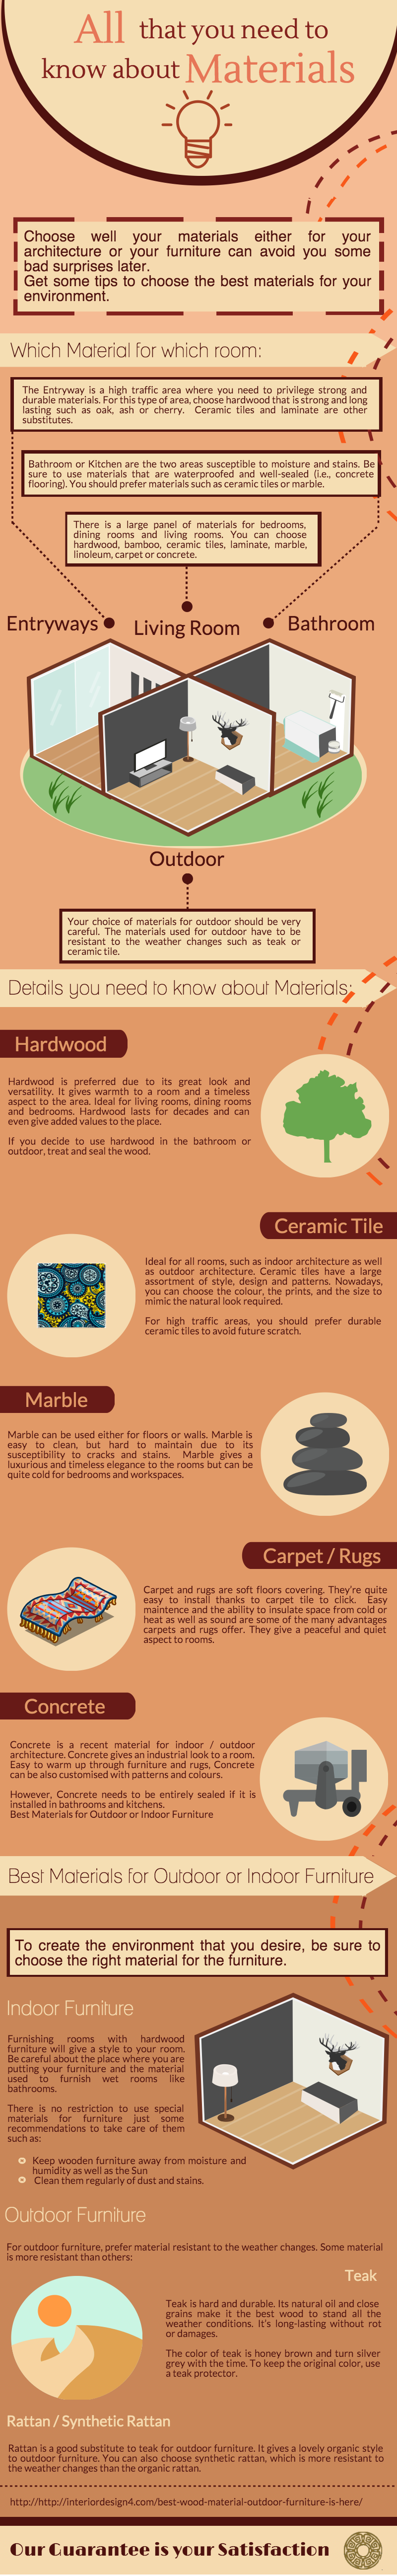 All that you need to know about Materials